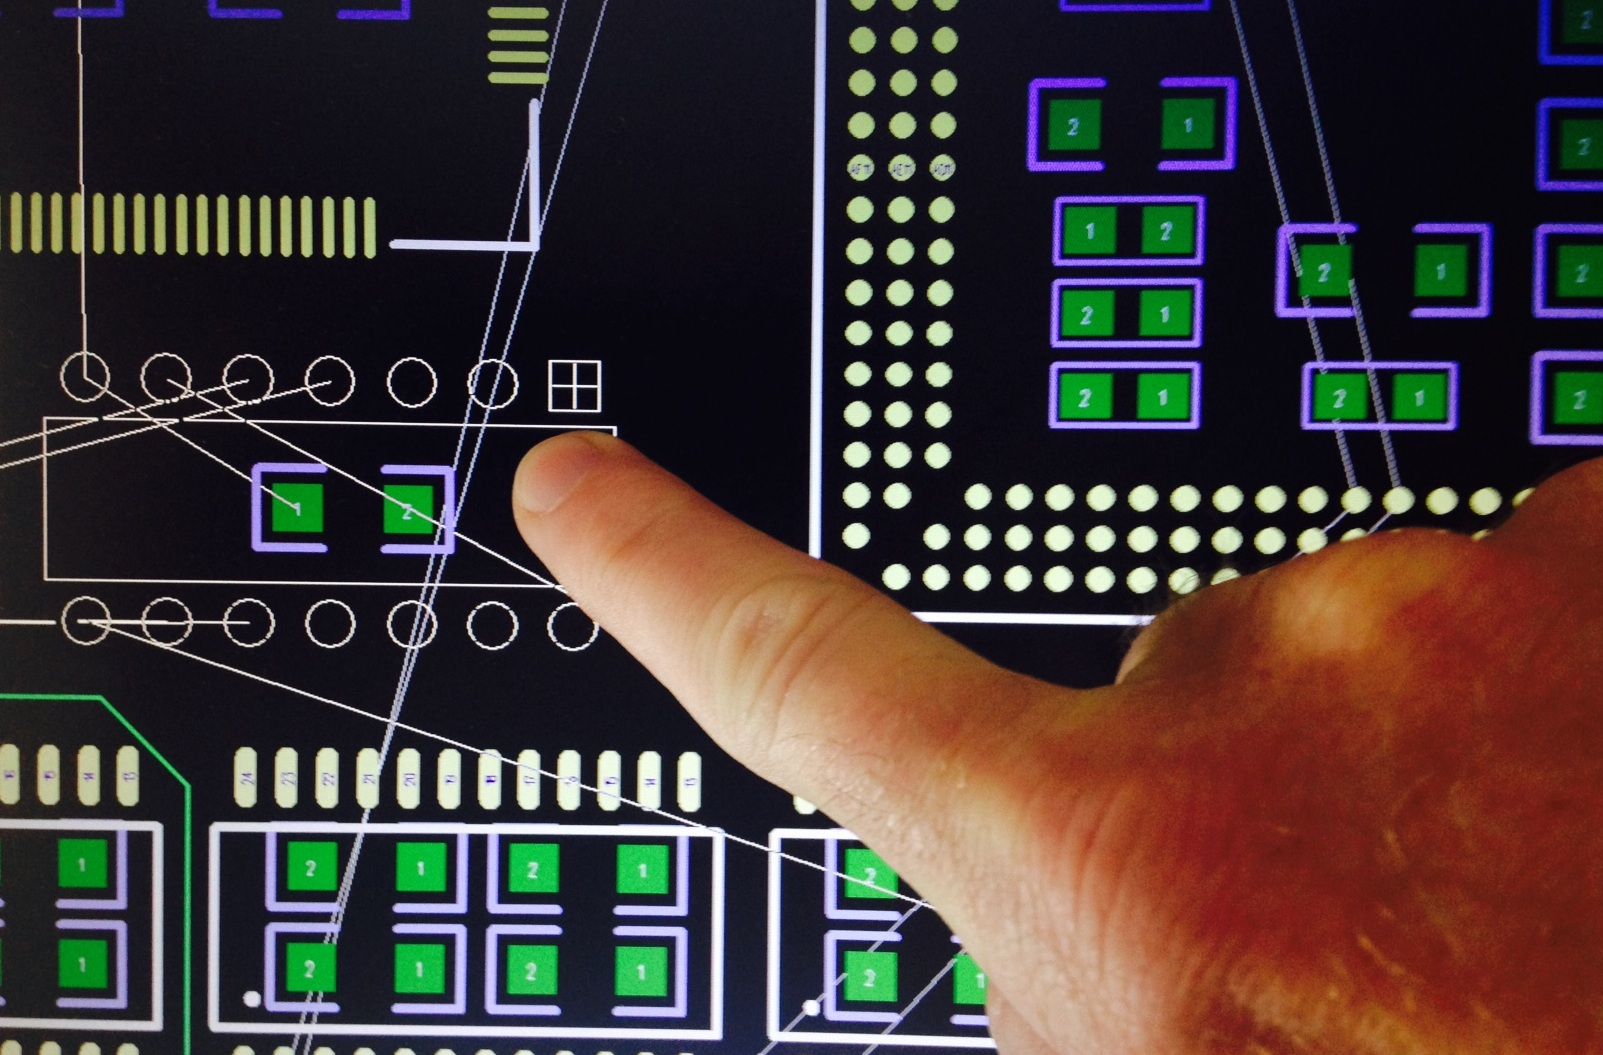 Touch Screen Use In Pcb Design Pads Desktop Altium Training Programs Designer Introduction Designing Pcbs Touchscreen 1